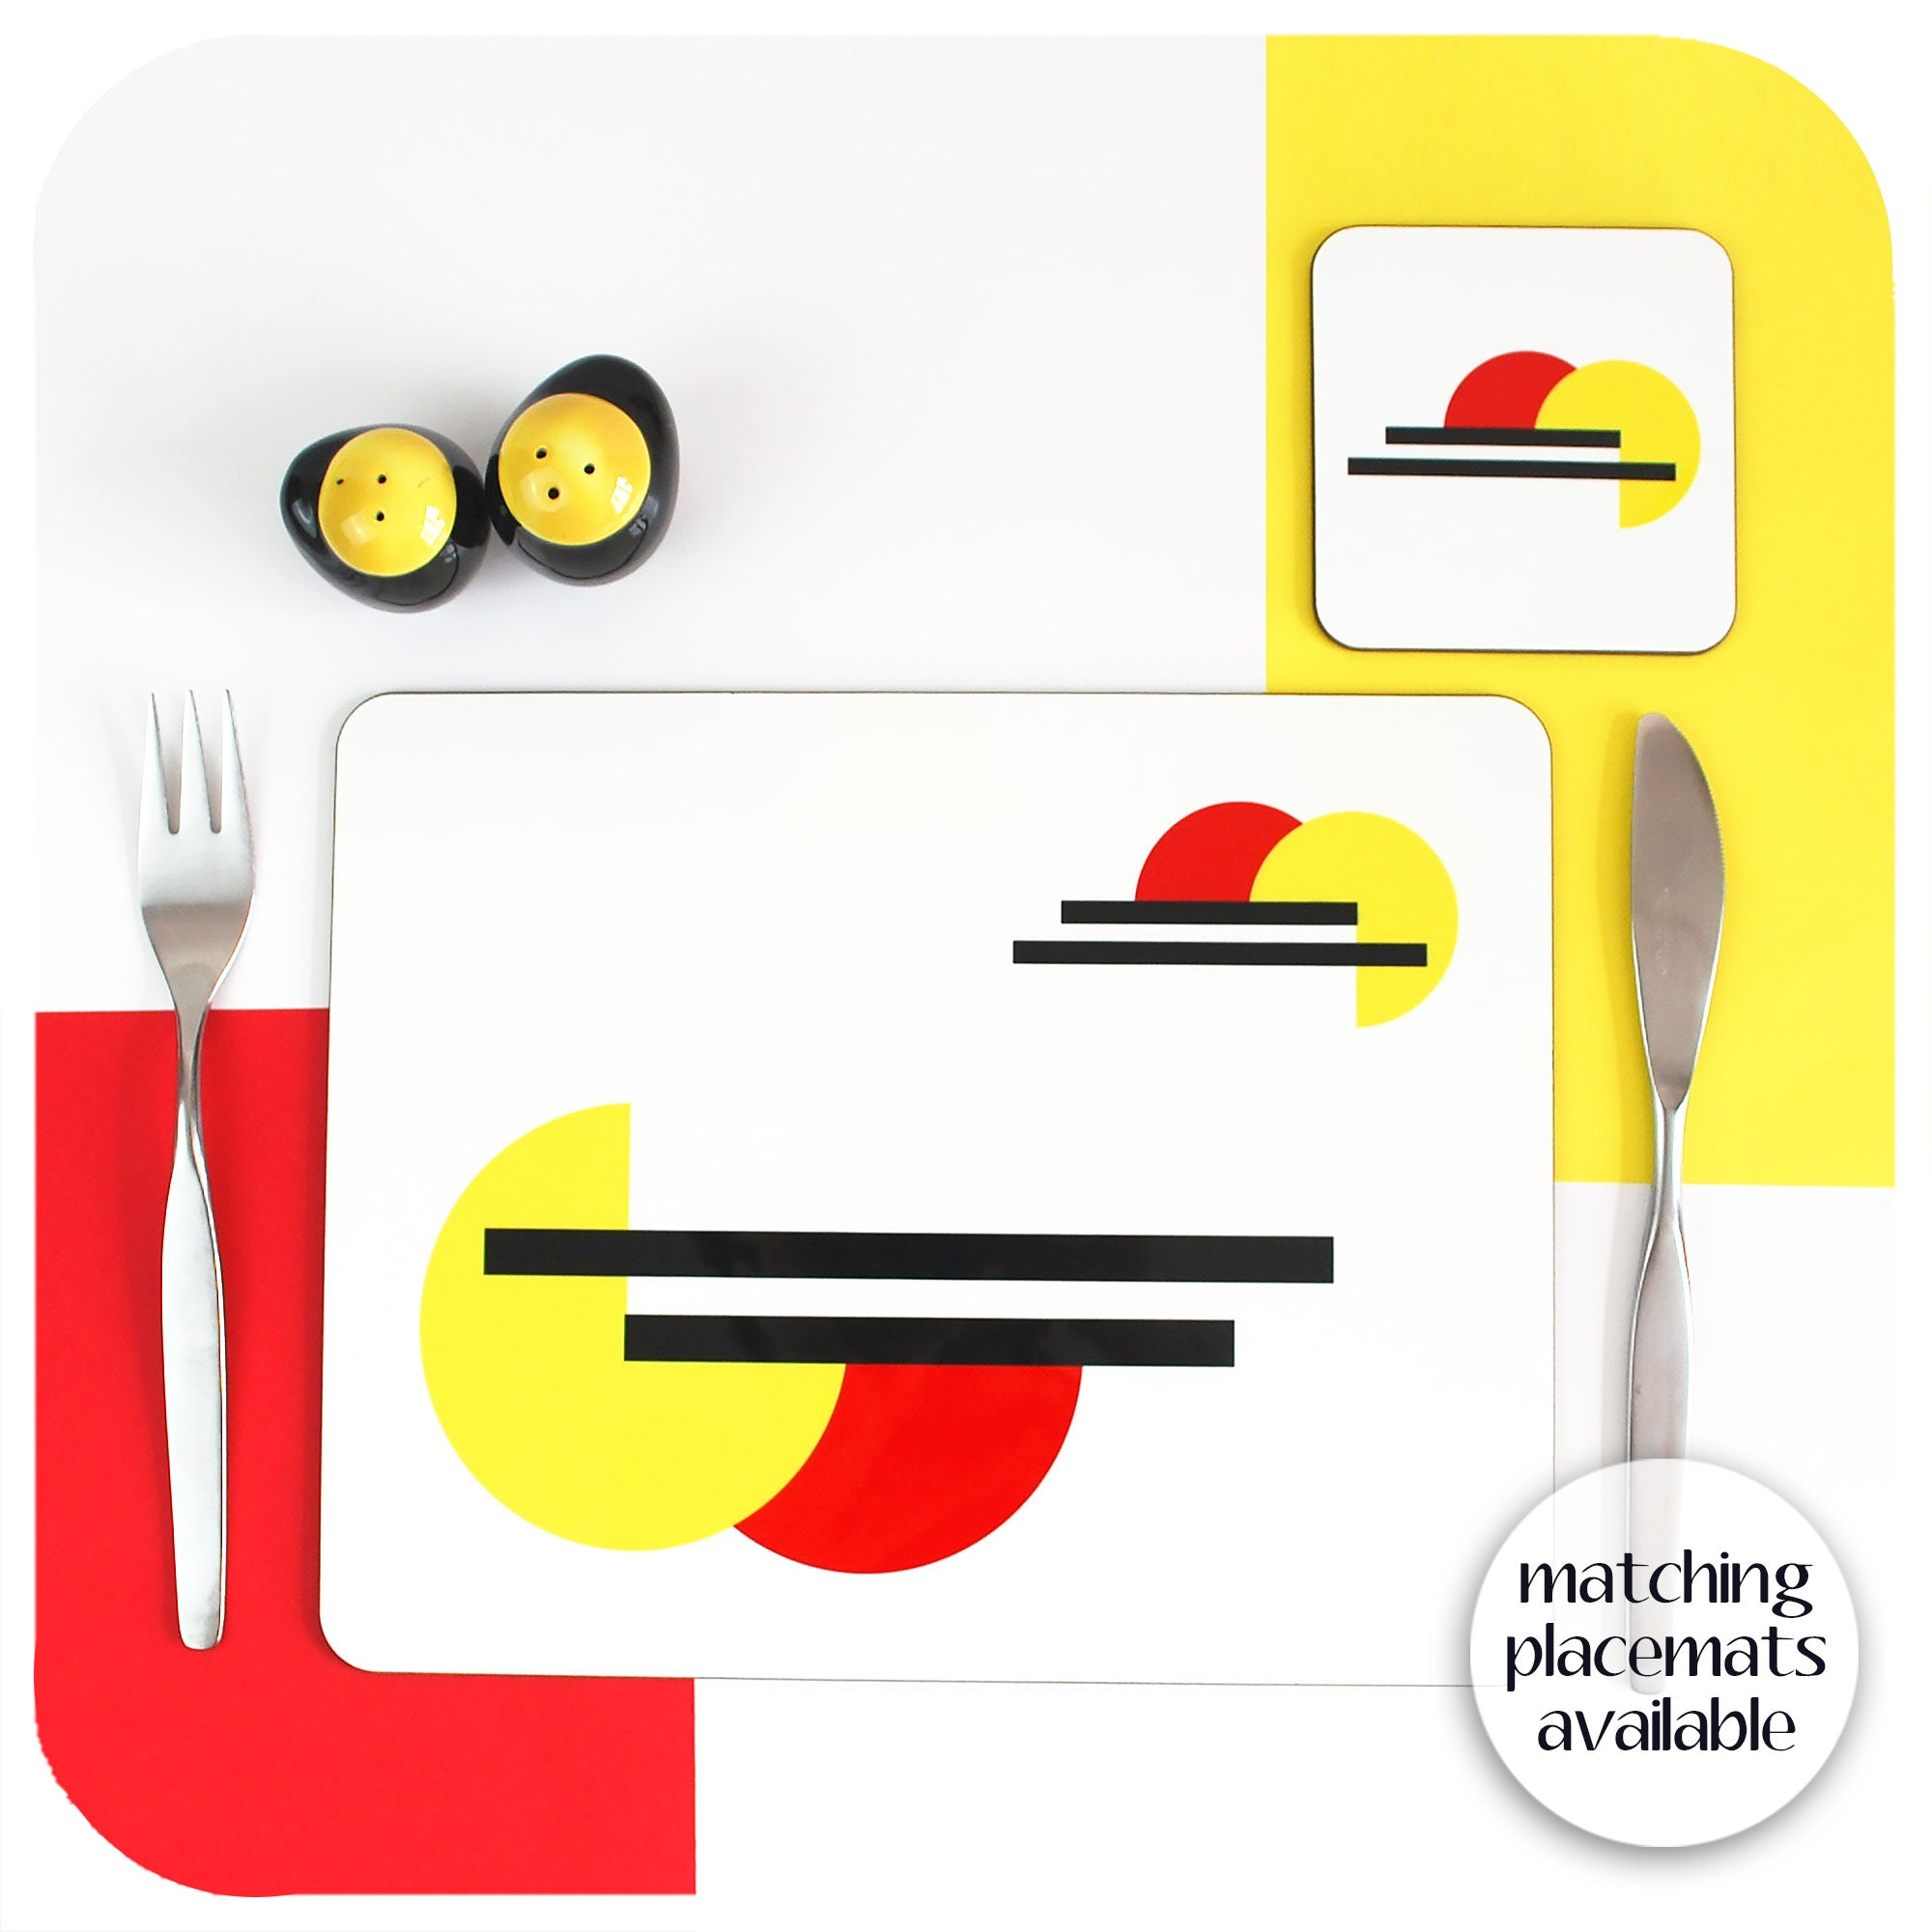 Matching bauhaus style placemat and coaster available | The Inkabilly Emporium